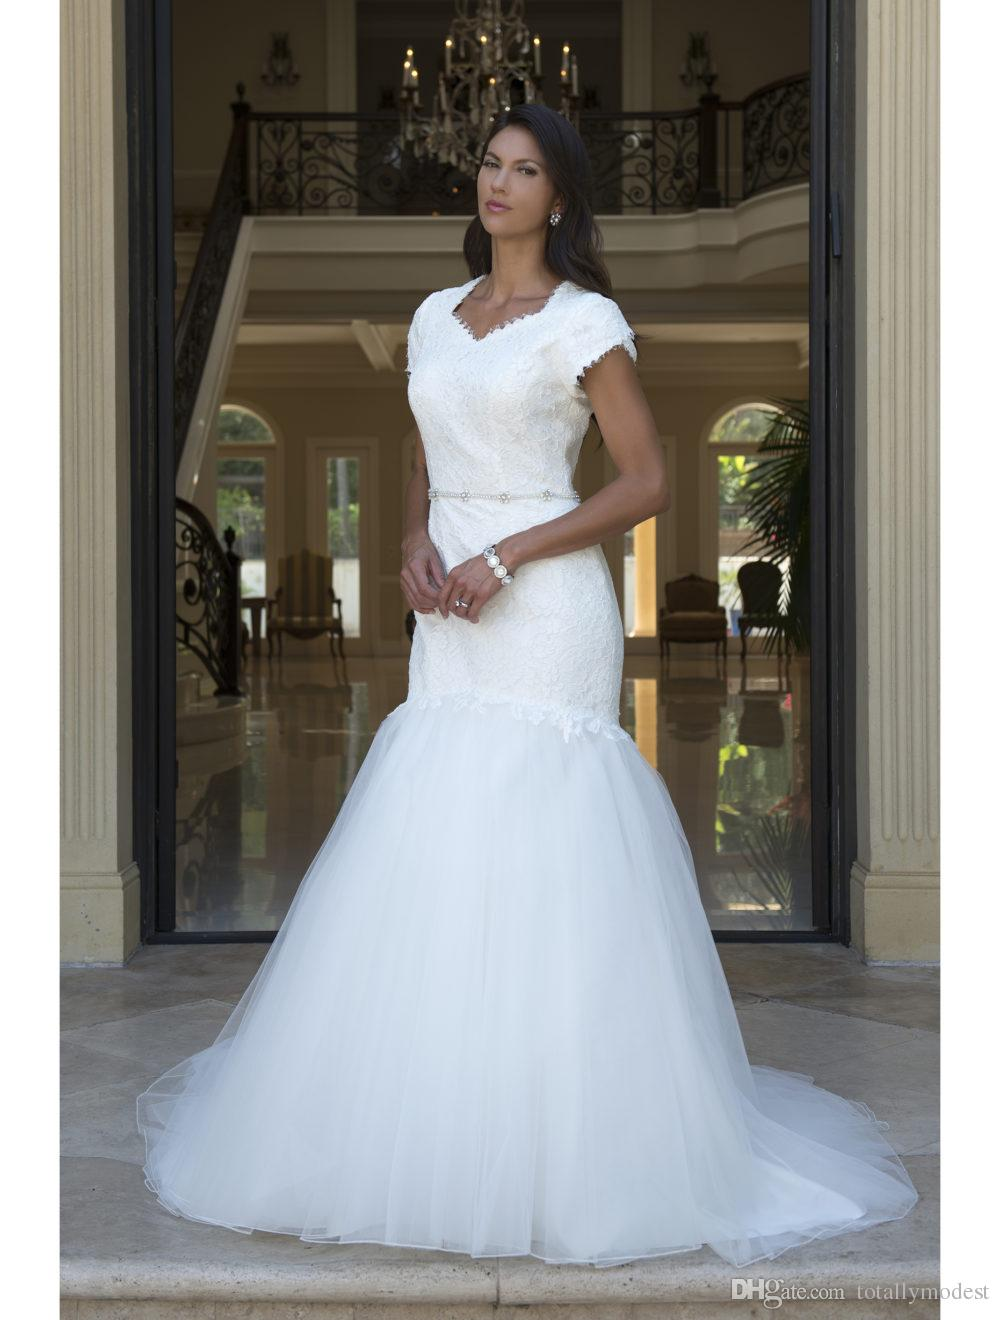 Fit and Flare Long Modest Wedding Dresses With Tulip Sleeves Lace Top Tulle Skirt LDS Temple Bridal Gowns With Short Train Custom Made